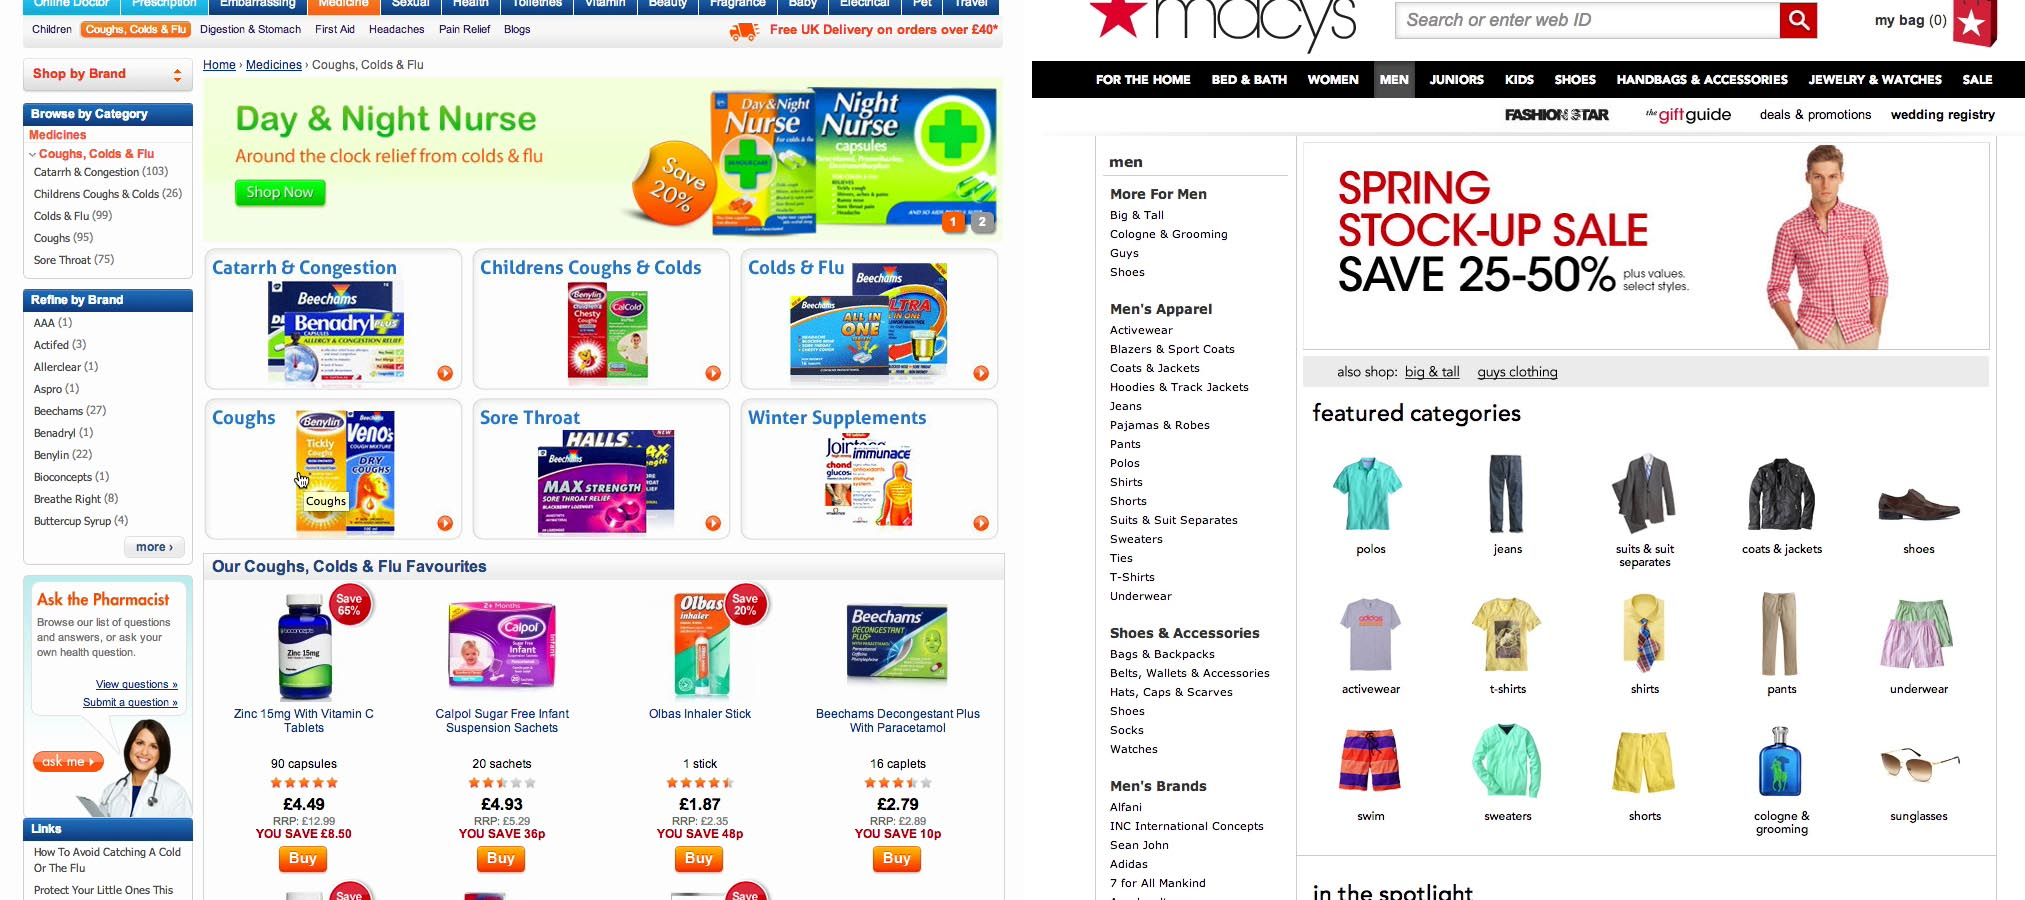 Found 5 products across 1 categories showing 1 5 products - When To Have Intermediary Category Pages